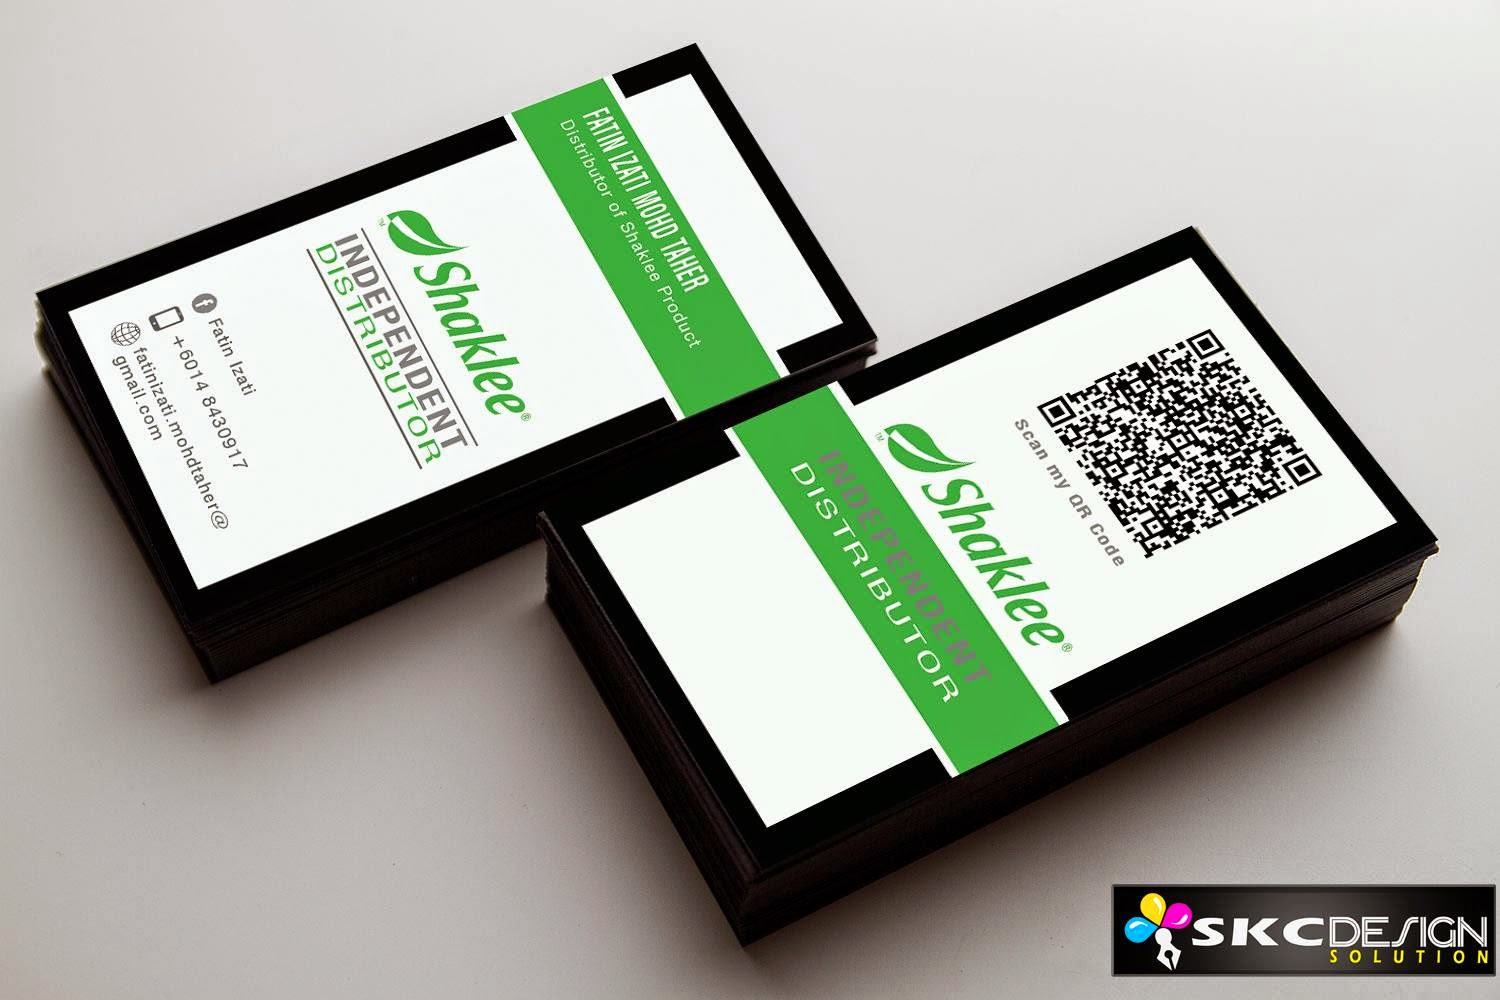 Skc design printing solution cheap name card design and printing skc design solution provide solution for your name card design and printing contact us to know more about our product and services colourmoves